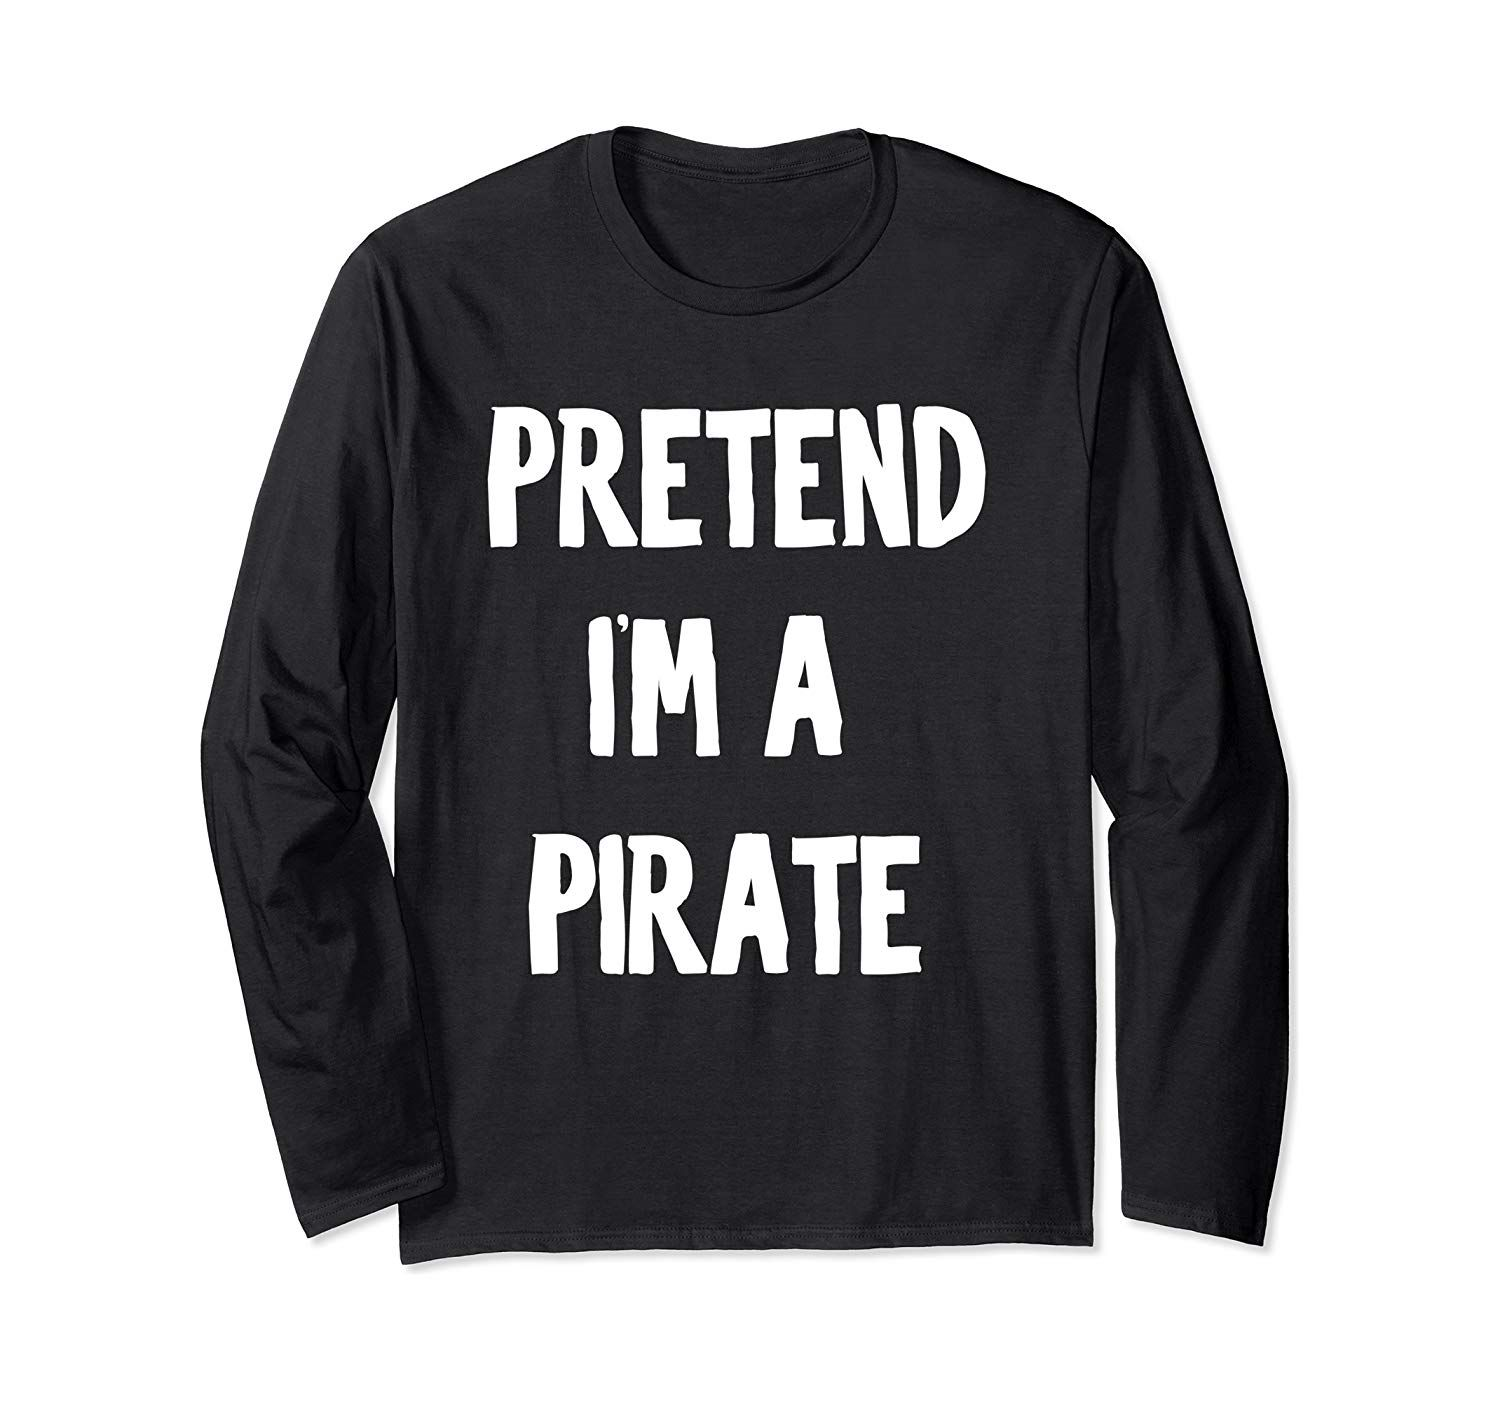 Pretend I'm a Pirate Tee Halloween Party Simple DIY Costume  Long Sleeve T-Shirt #mamp;mcostumediy